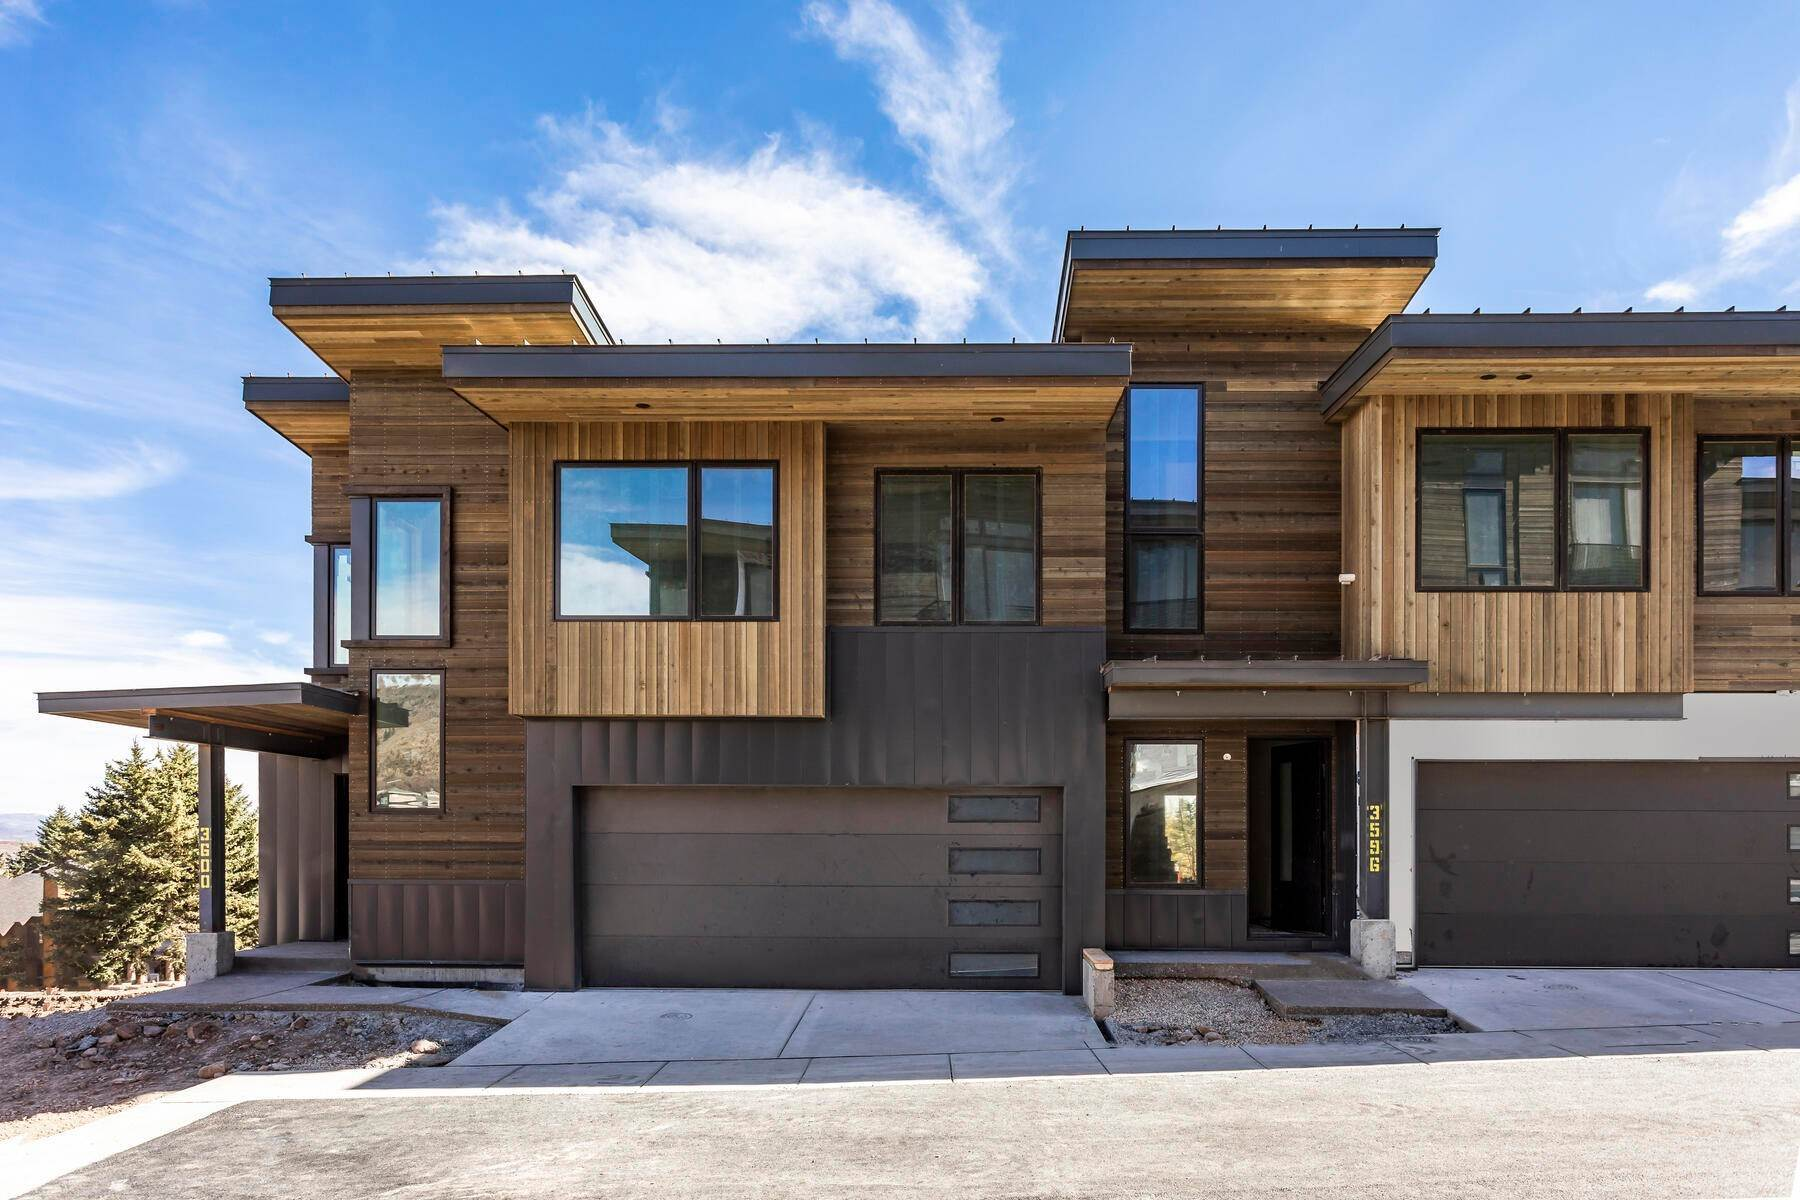 2. townhouses for Sale at Ski-In Townhomes in Canyons Village 3532 Ridgeline Drive Park City, Utah 84098 United States